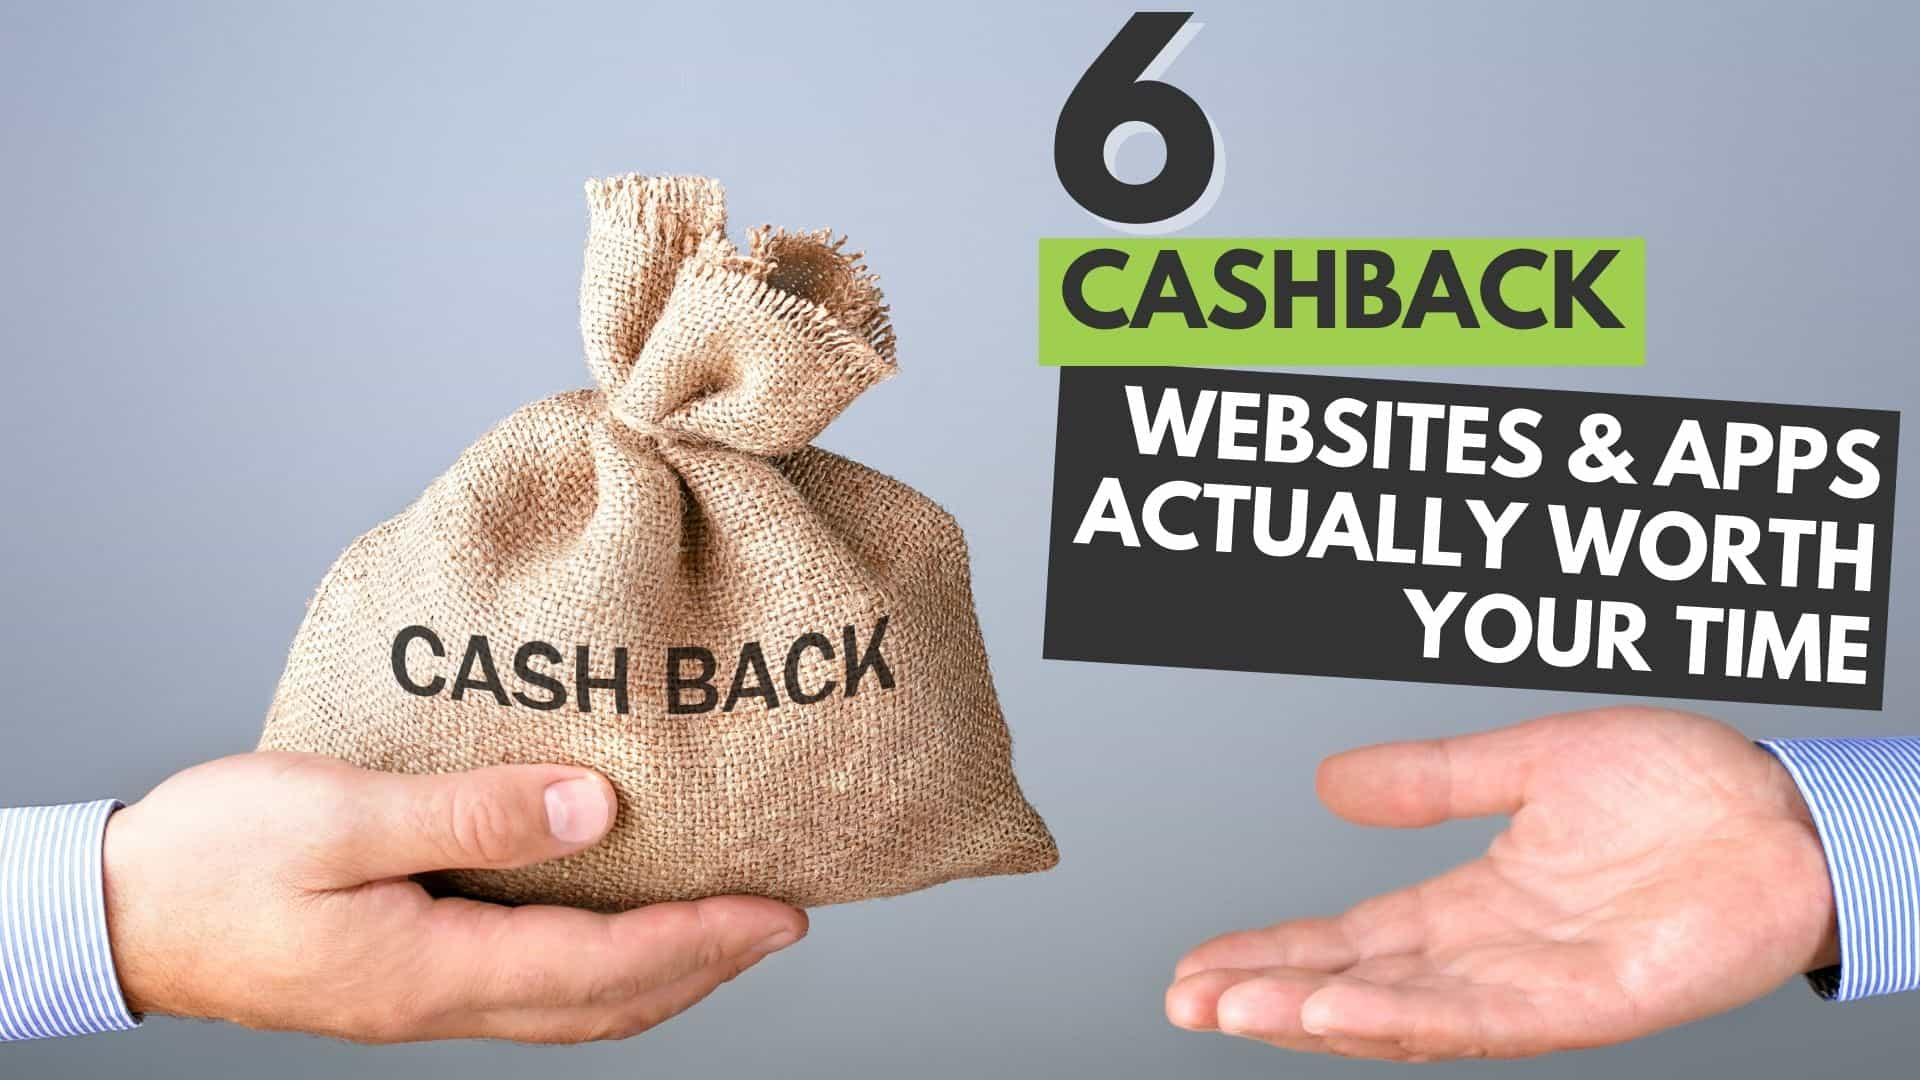 6 Cashback Shopping Websites Worth Your Time